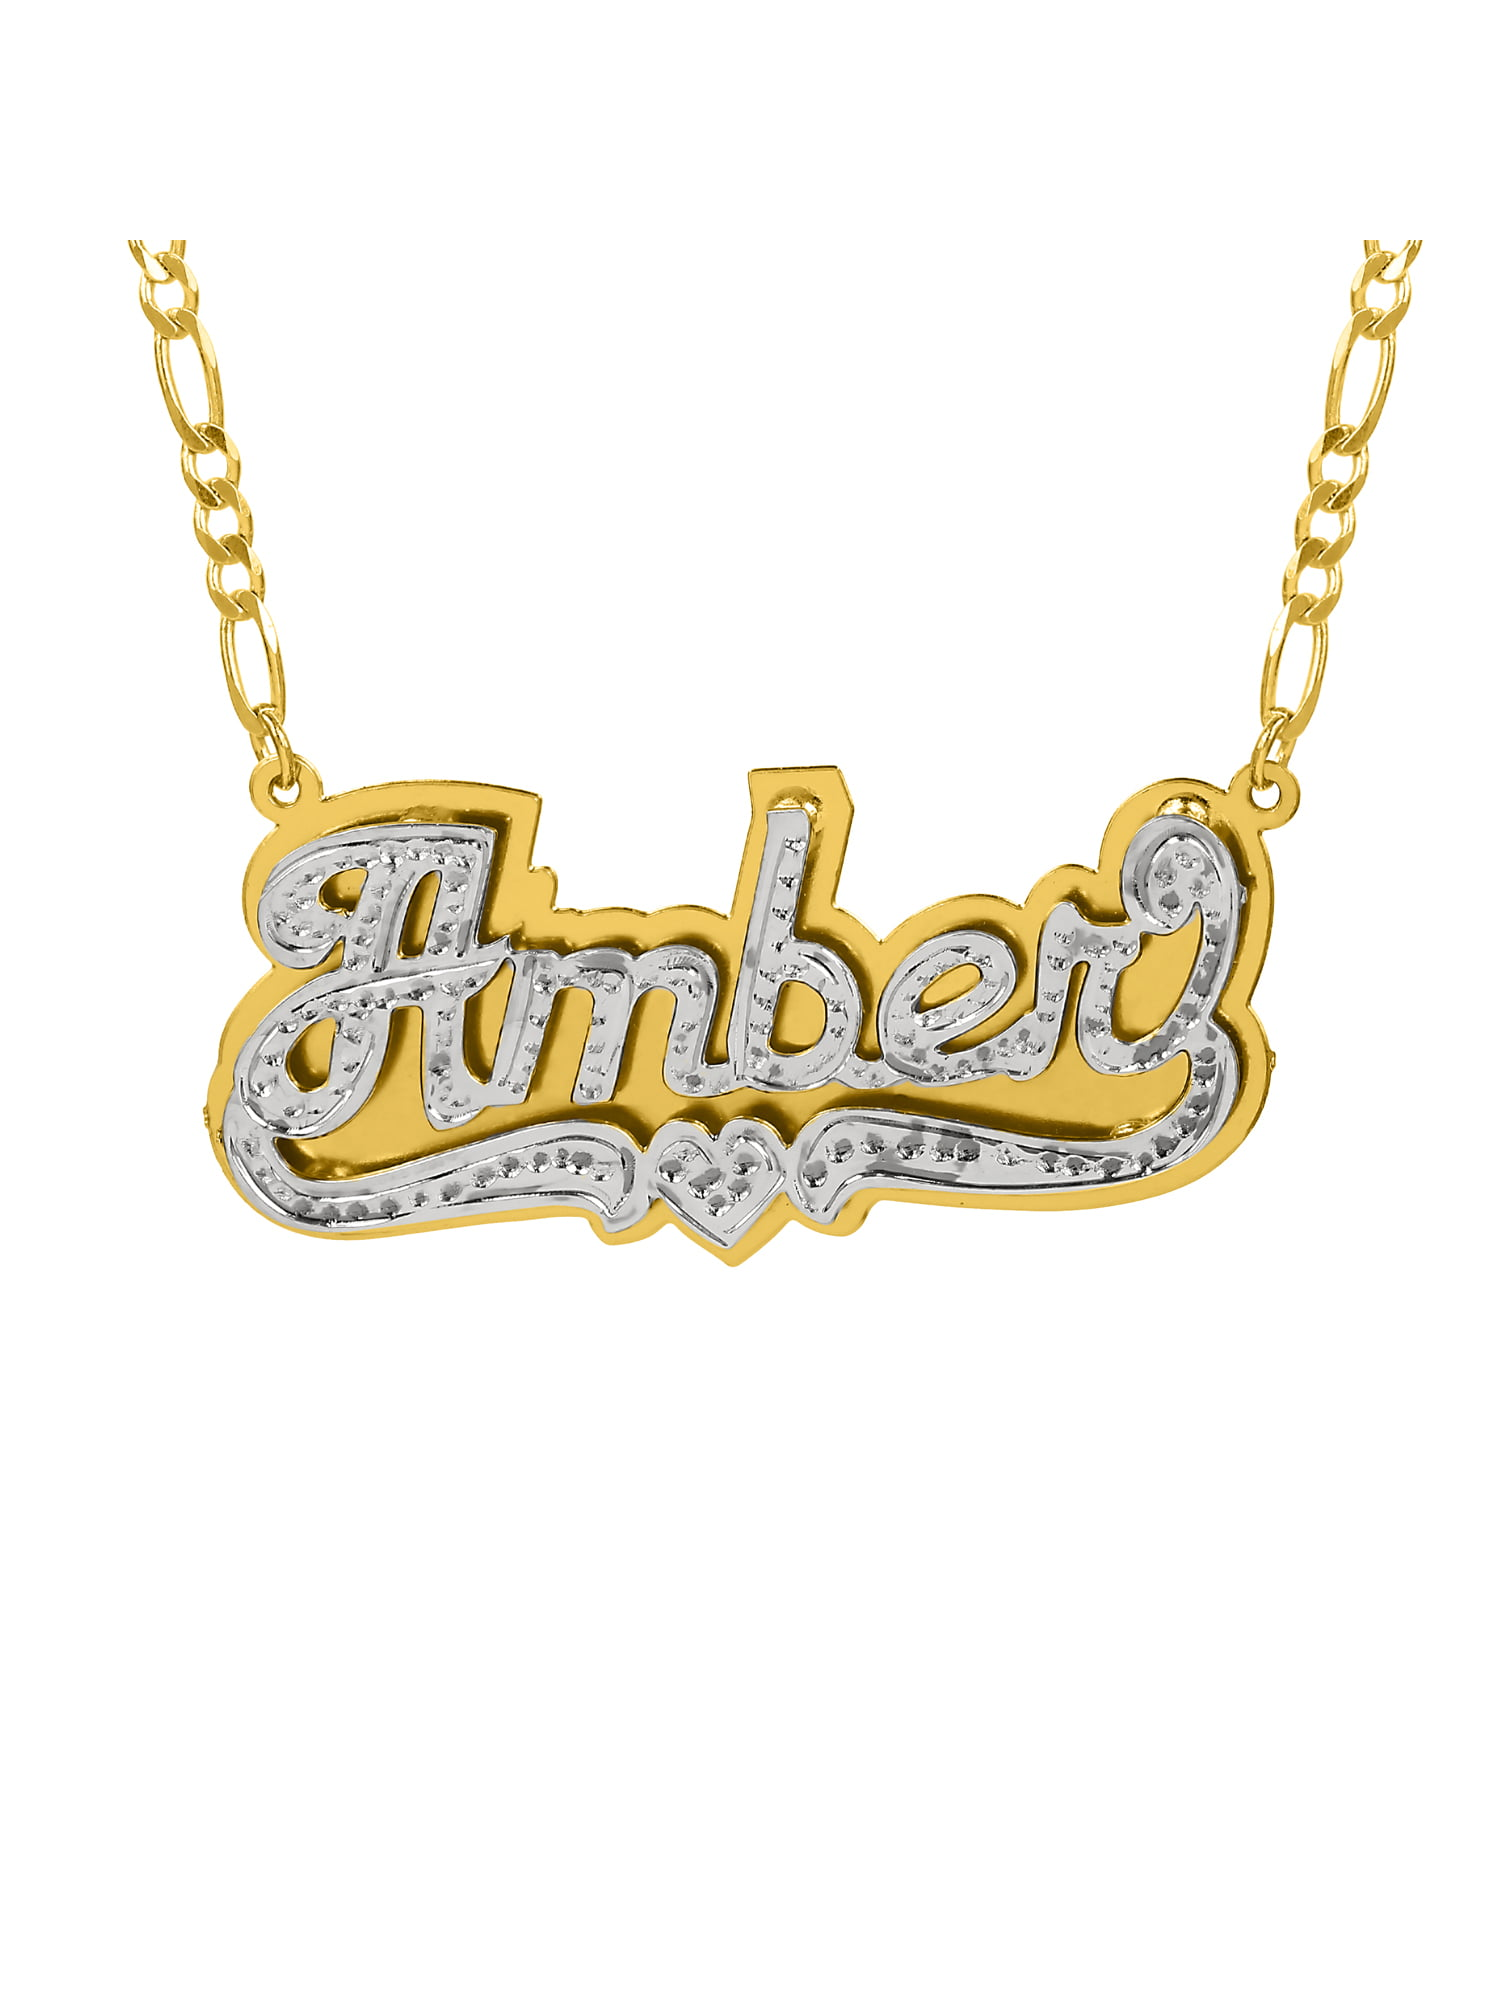 Jay Aimee Designs - Personalized Sterling Silver or Gold ...